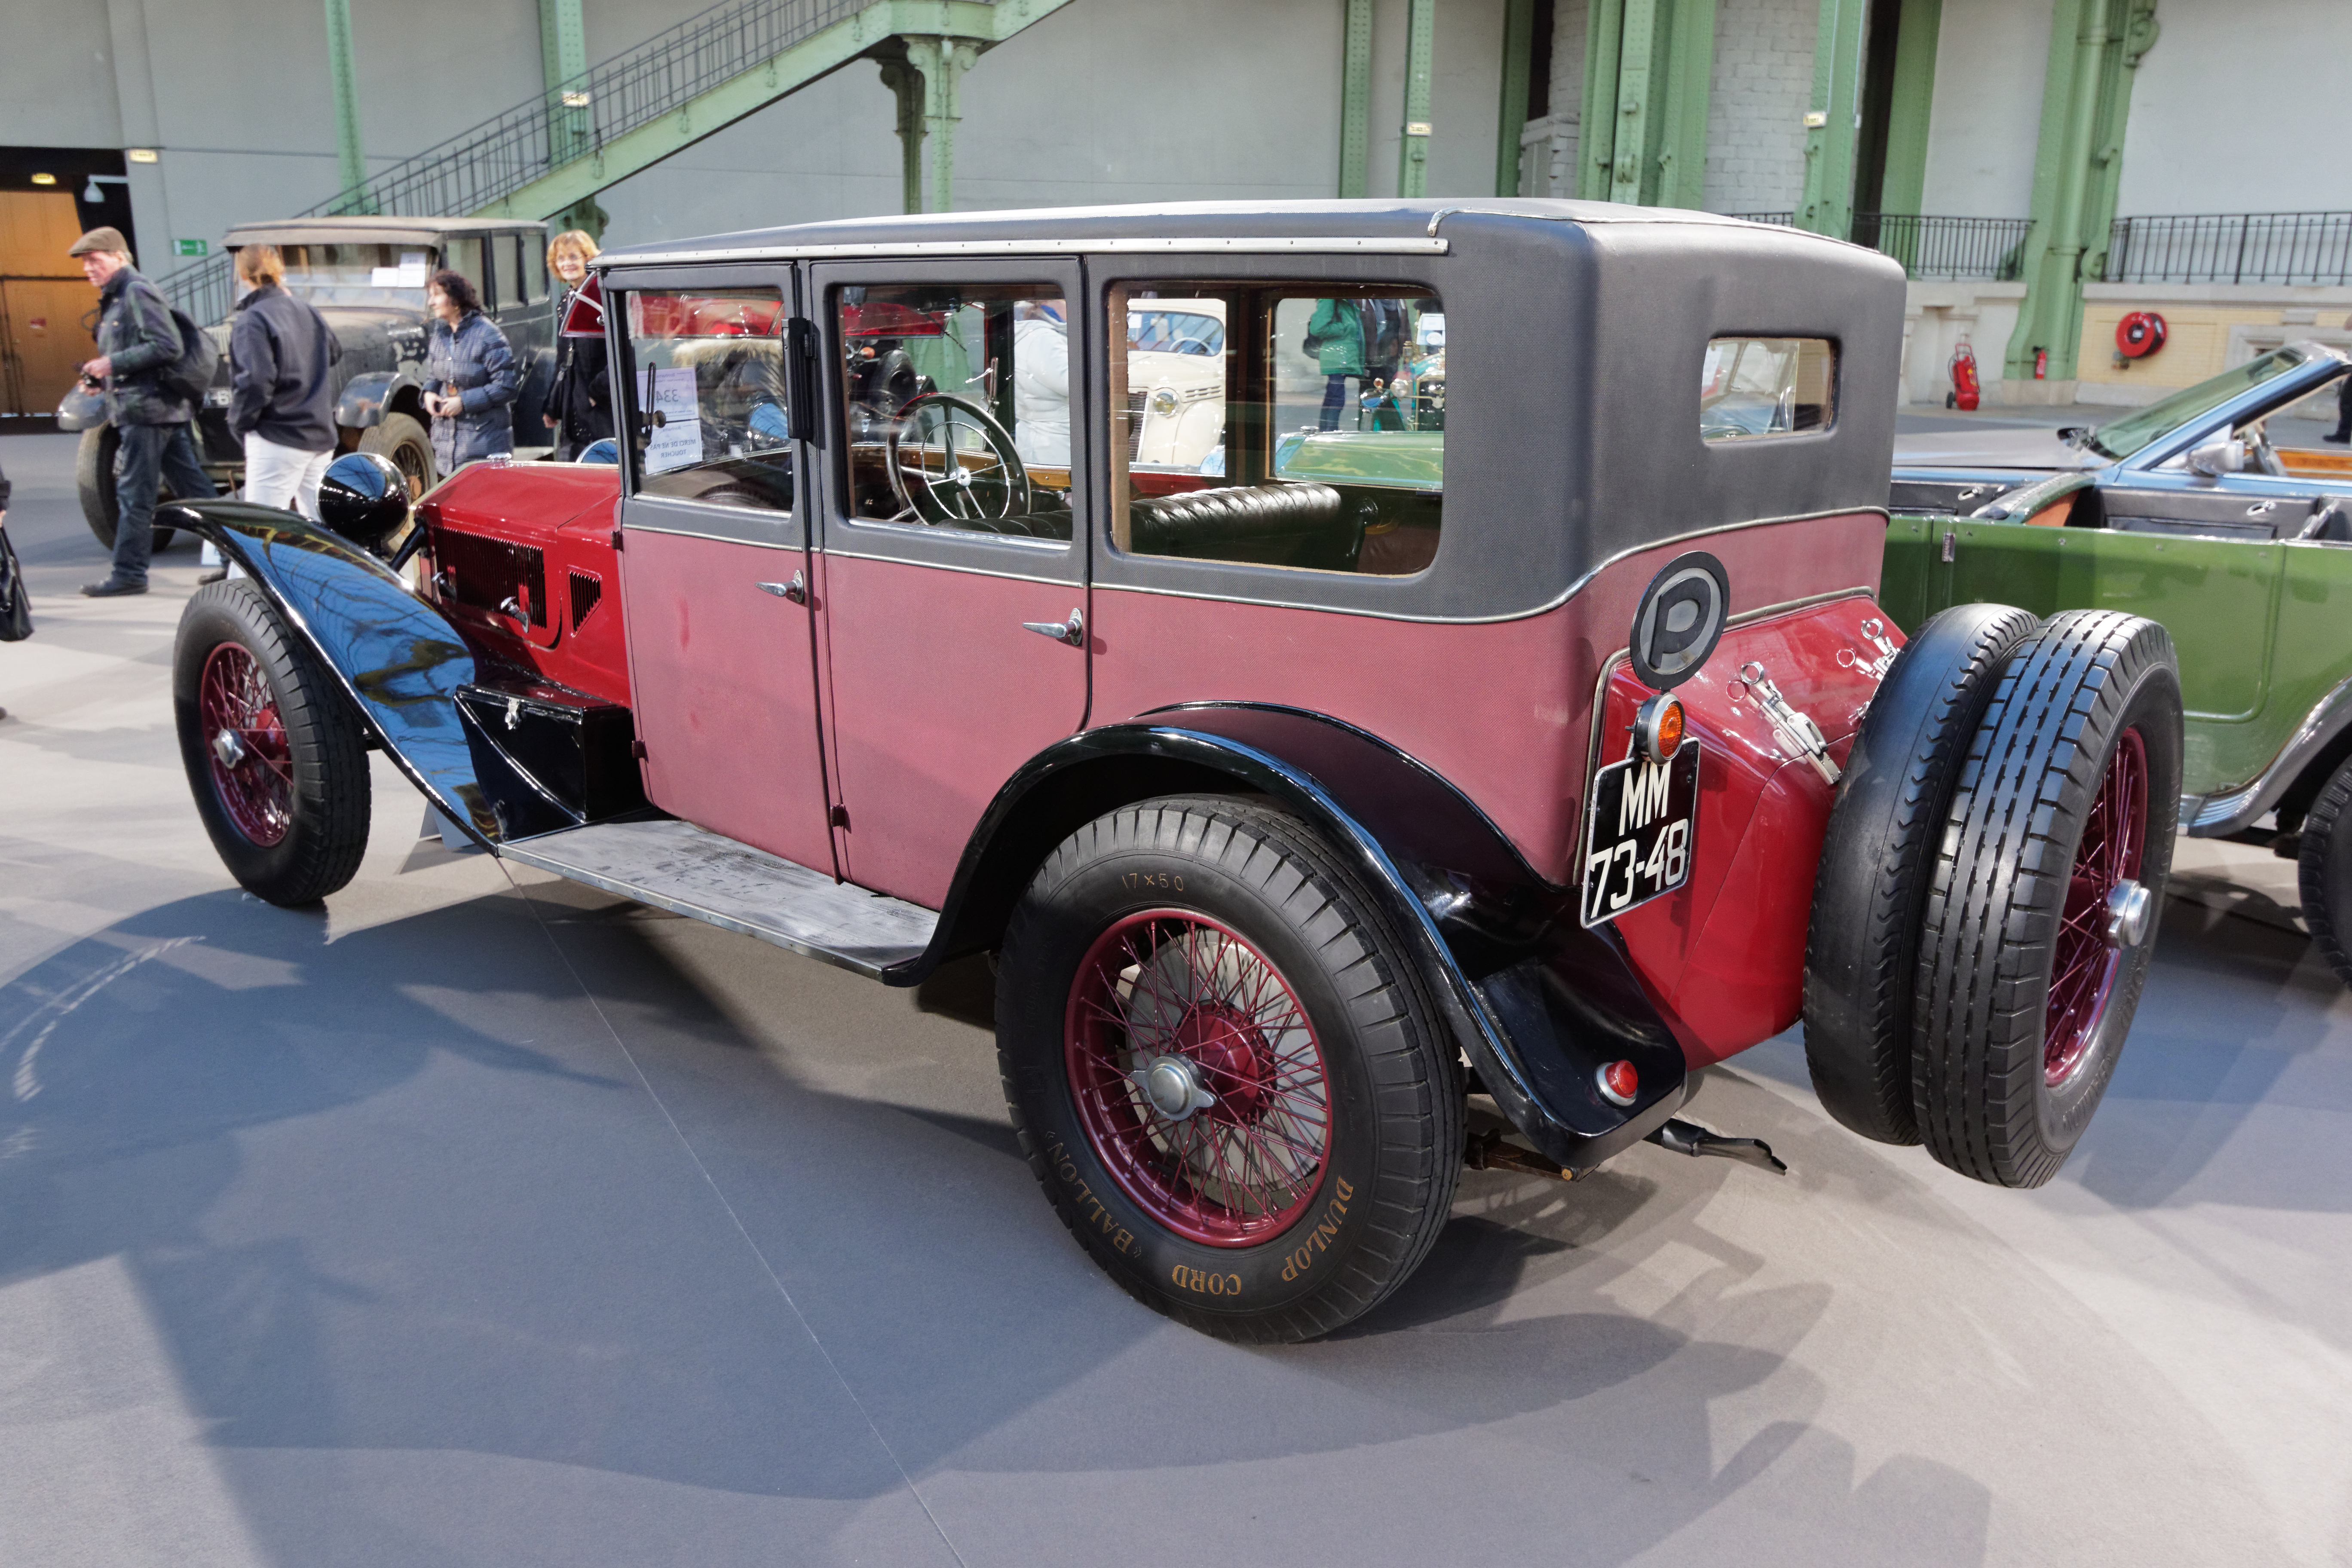 https://upload.wikimedia.org/wikipedia/commons/6/65/Paris_-_Bonhams_2015_-_Lancia_Lambda_7th_Series_Weymann_Limousine_-_1928_-_005.jpg